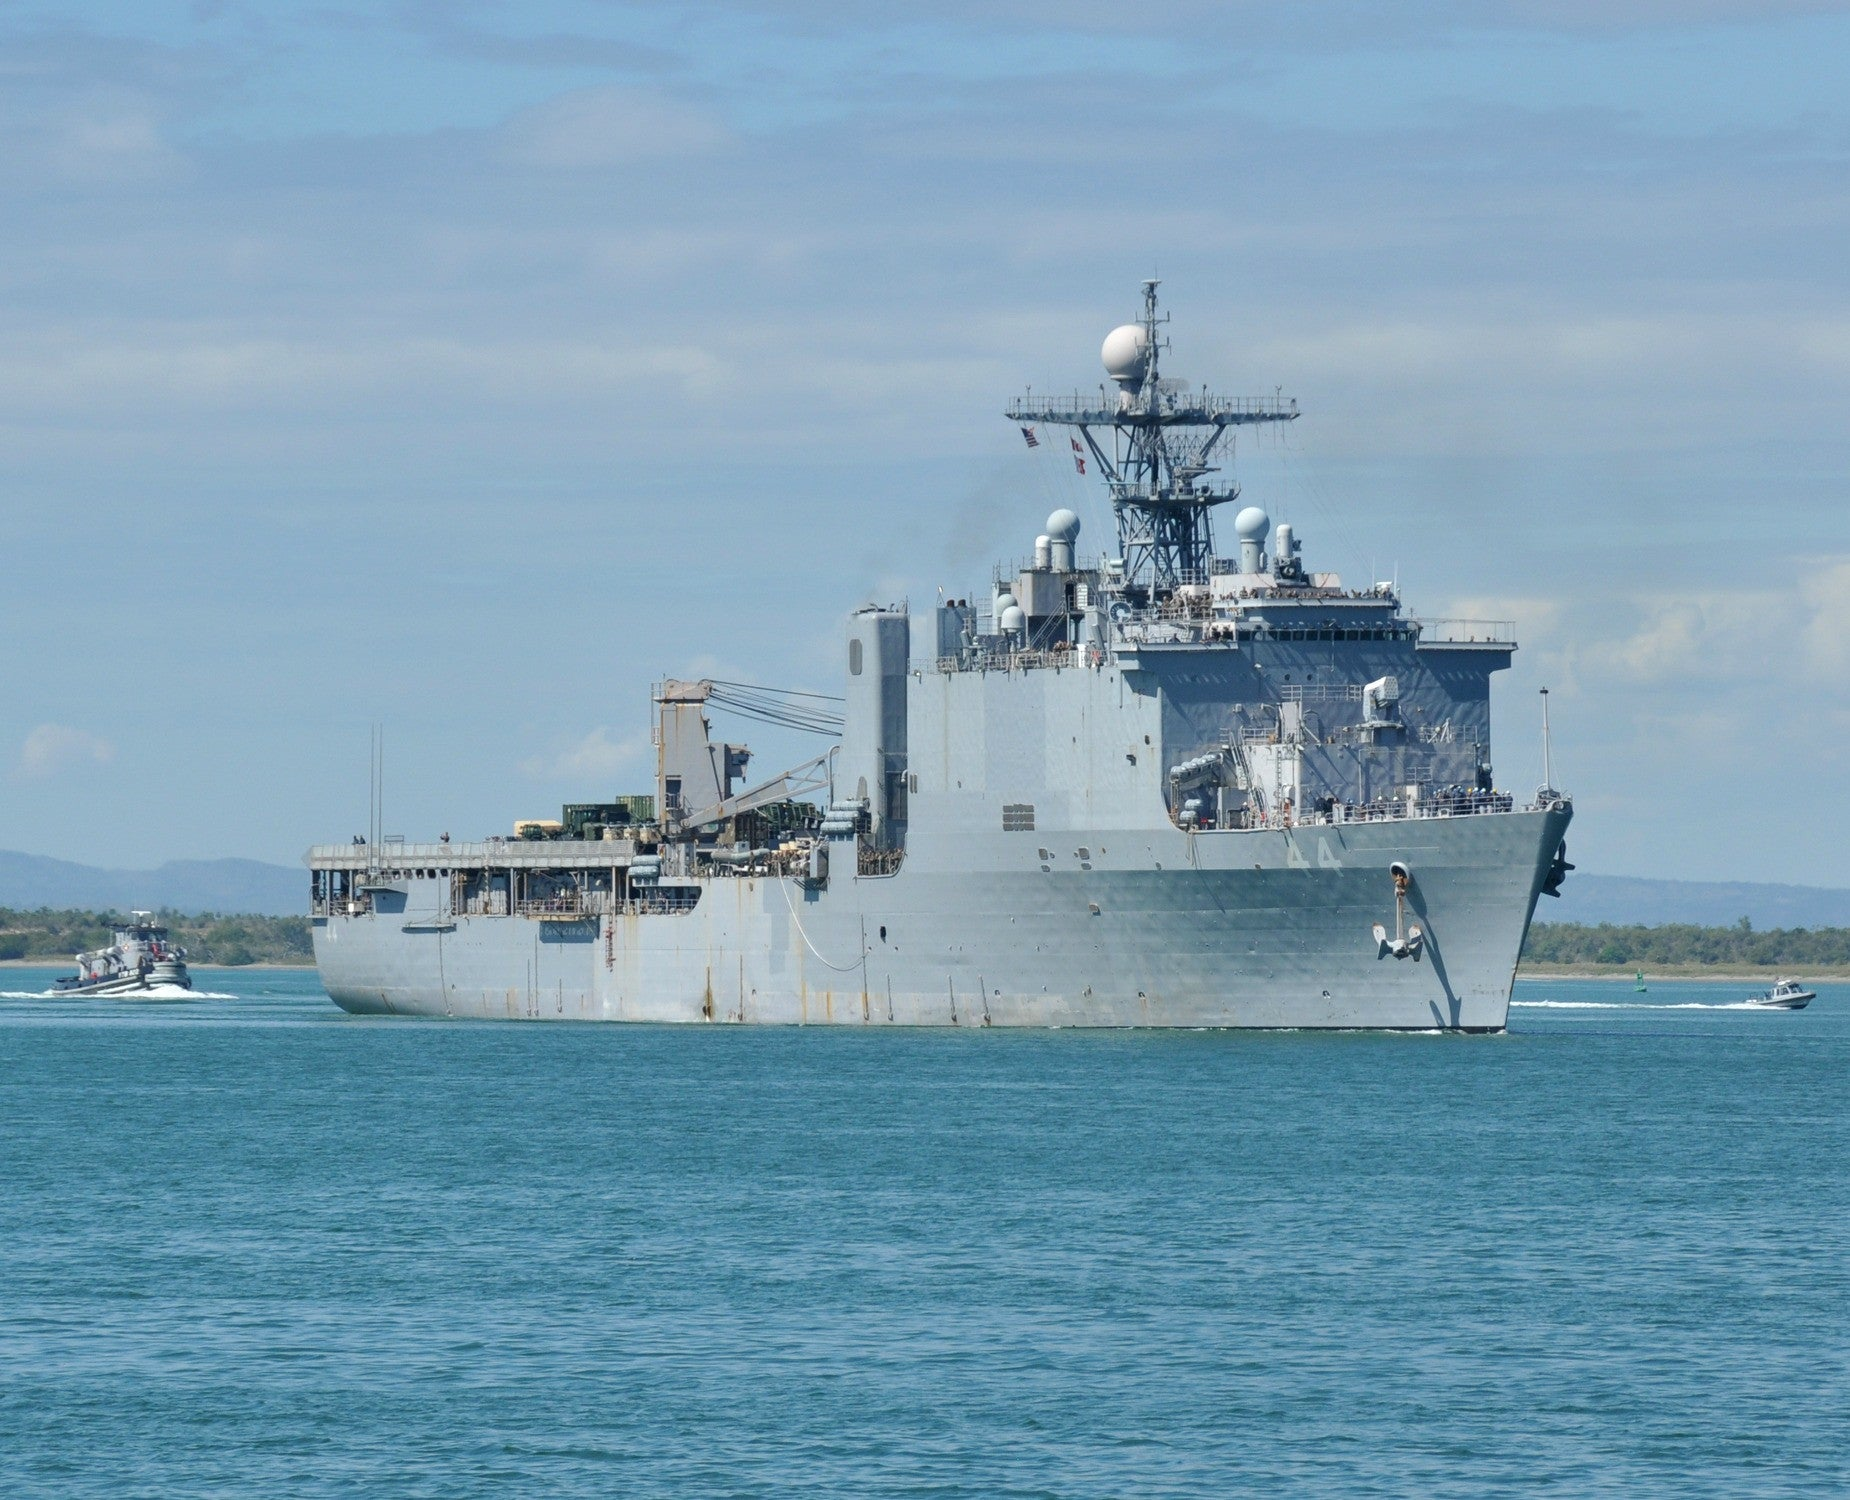 "Landing Ship, Dock USS Gunston Hall Guantanamo Bay, Cuba January 19, 2011 - 8 x 10"" Photograph"